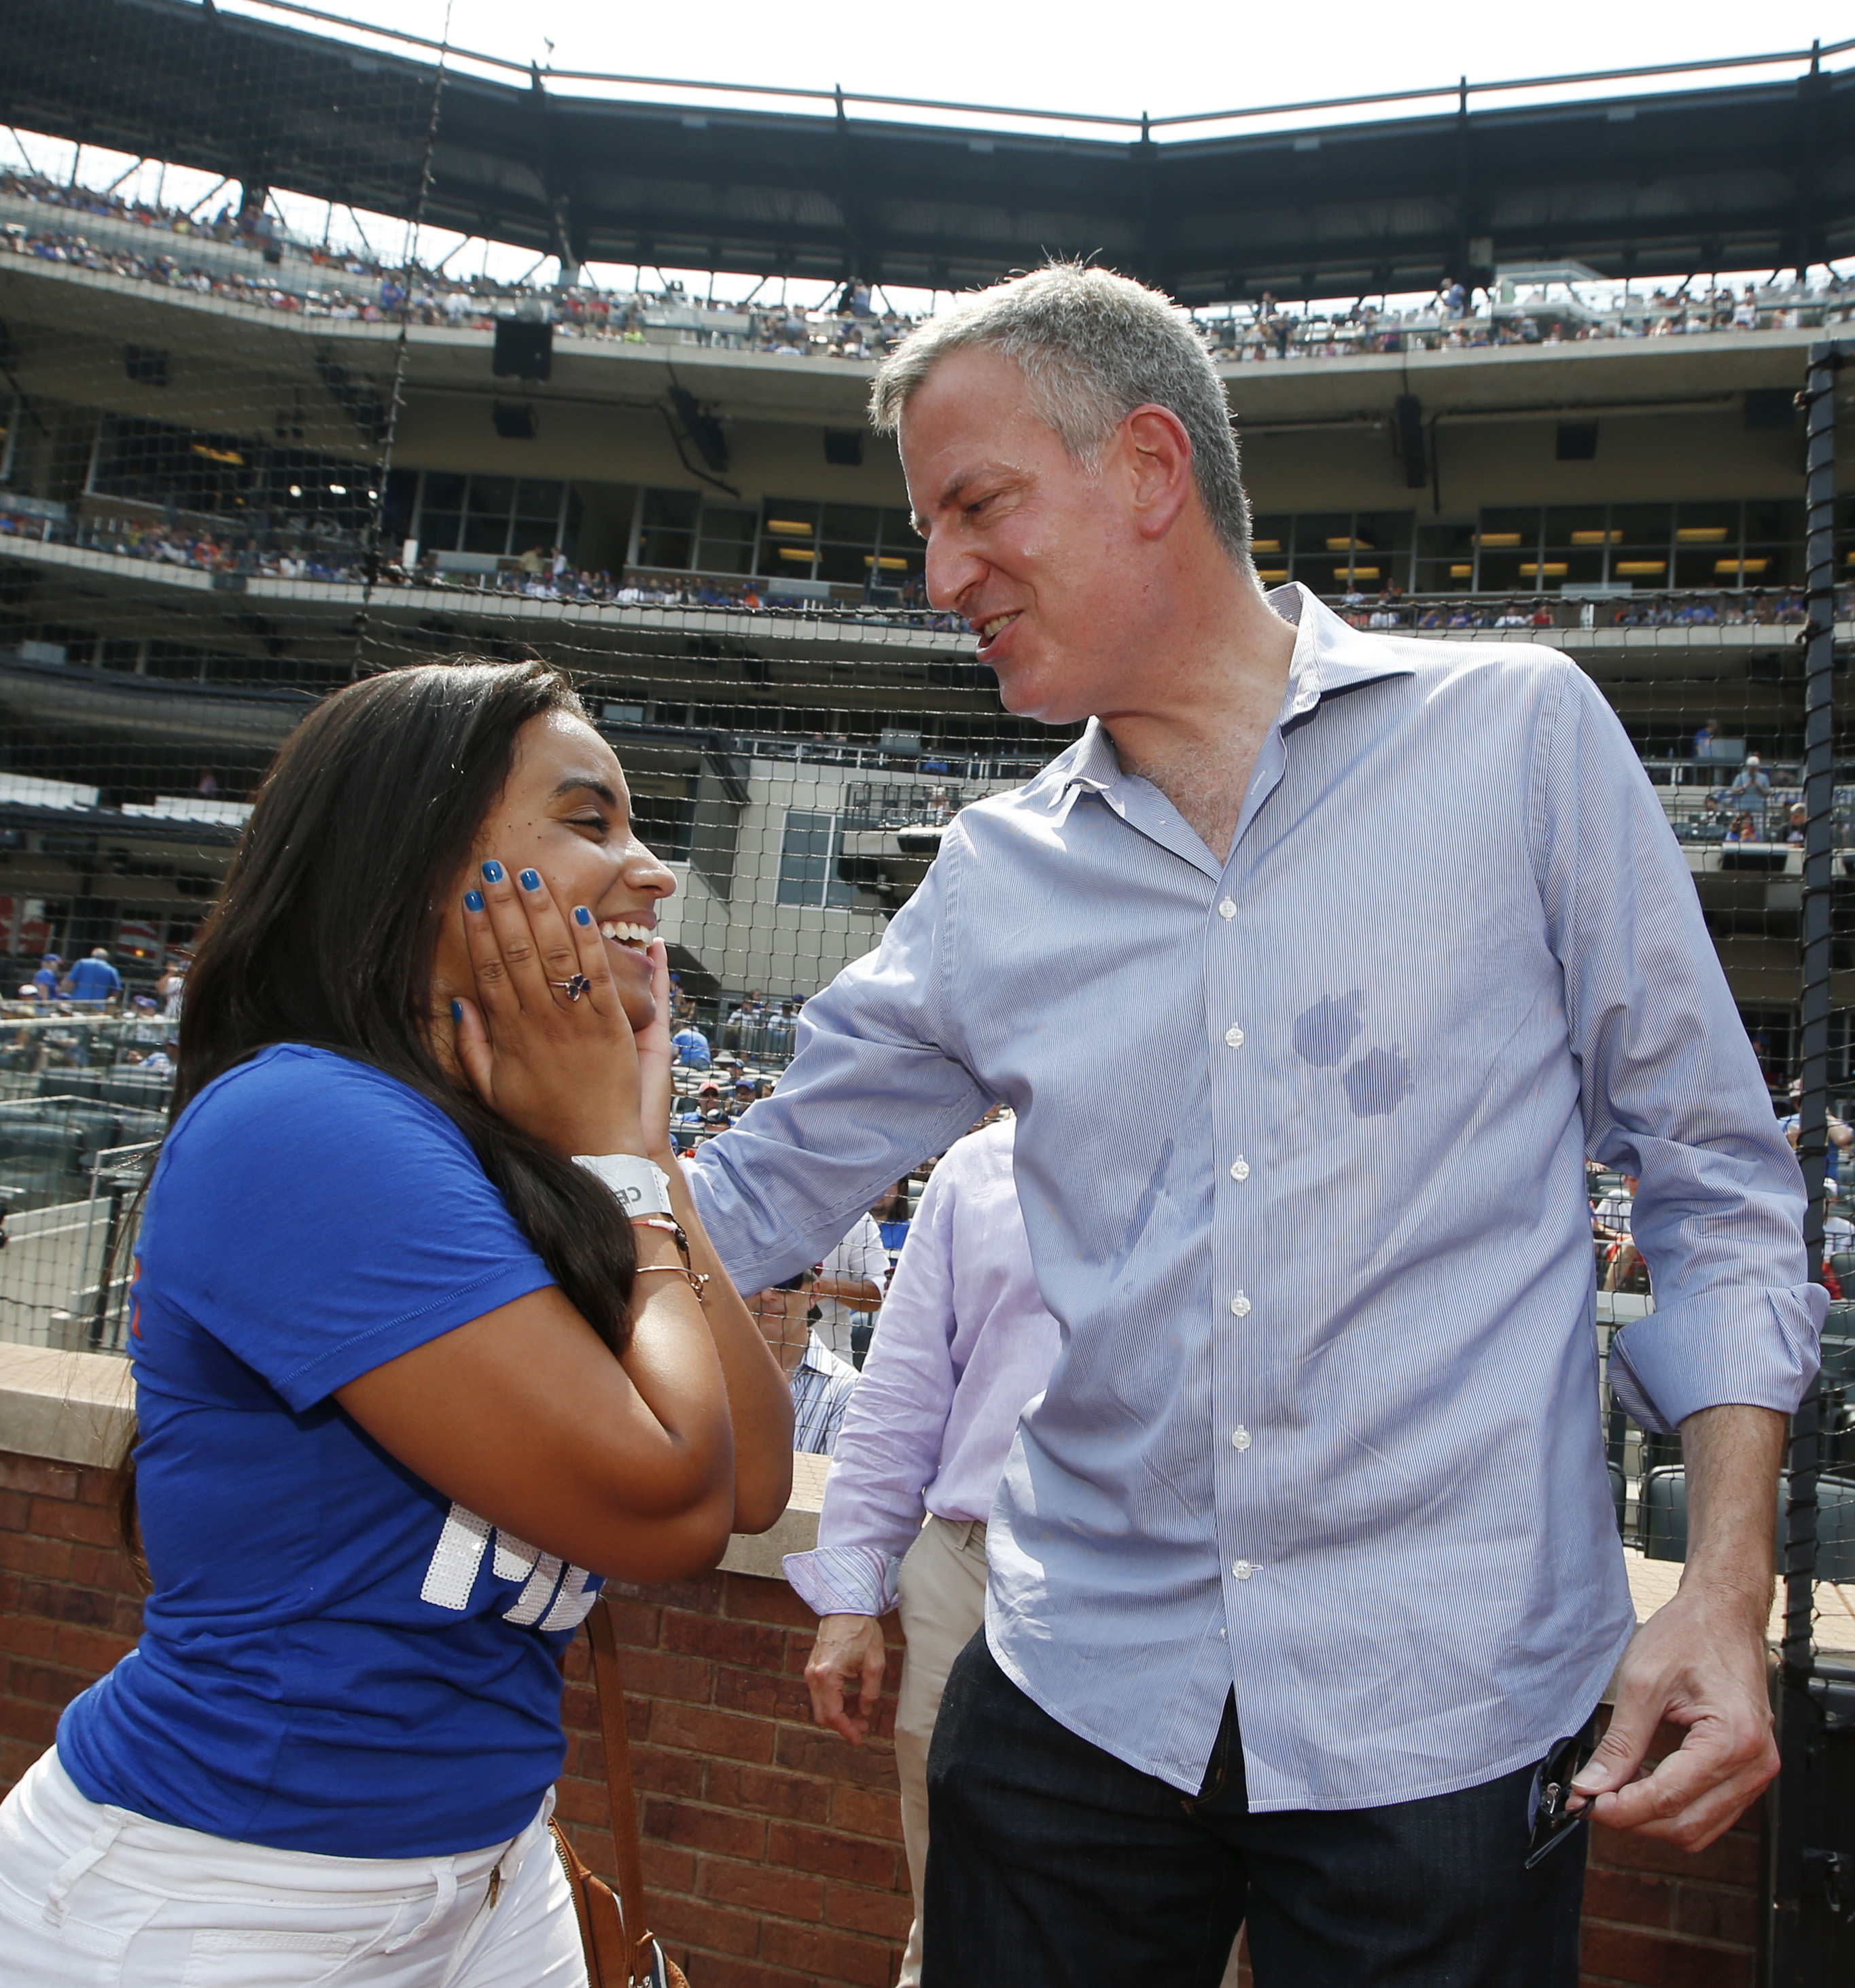 Josefina Sora, left, reacts after singing the national anthem and then meeting New York Mayor Bill de Blasio before an interleague baseball game between the New York Mets and the Boston Red Sox in New York, Sunday, Aug. 30, 2015. (AP Photo/Kathy Willens)